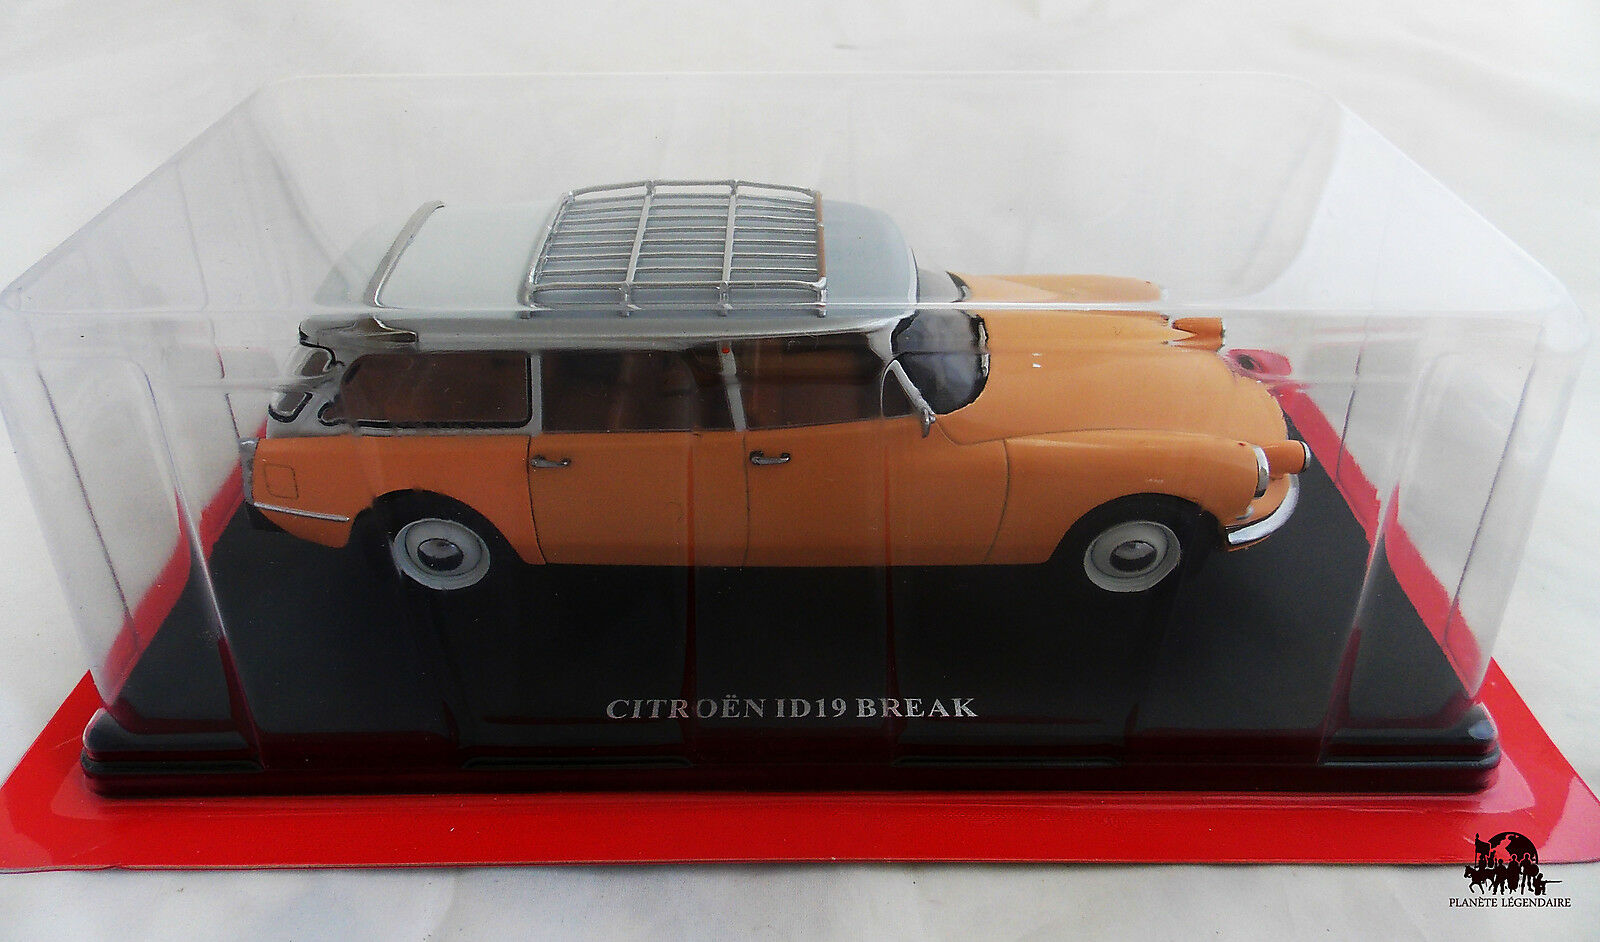 Miniature IXO Voiture CITROEN ID 19 Break 1958 Echelle 1 24e Diecast Metal